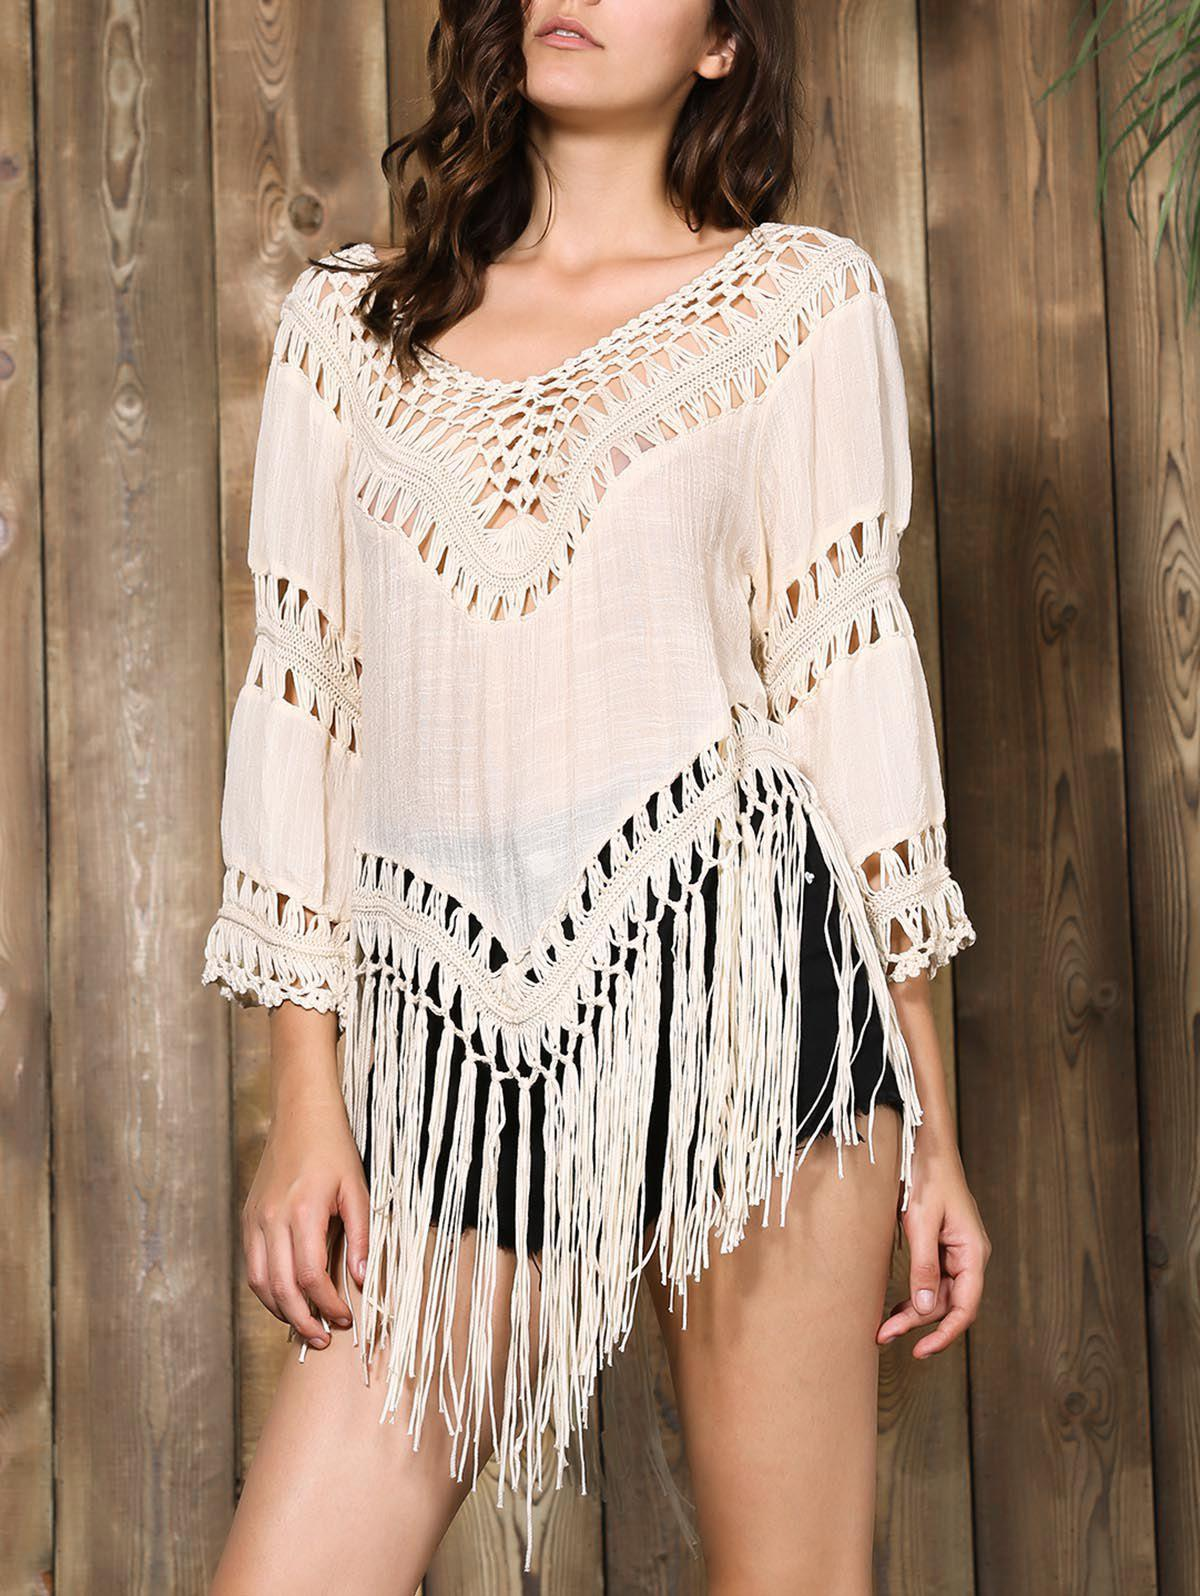 Stylish V-Neck Hollow Out Tassel Spliced 3/4 Sleeve Women's Blouse - APRICOT ONE SIZE(FIT SIZE XS TO M)